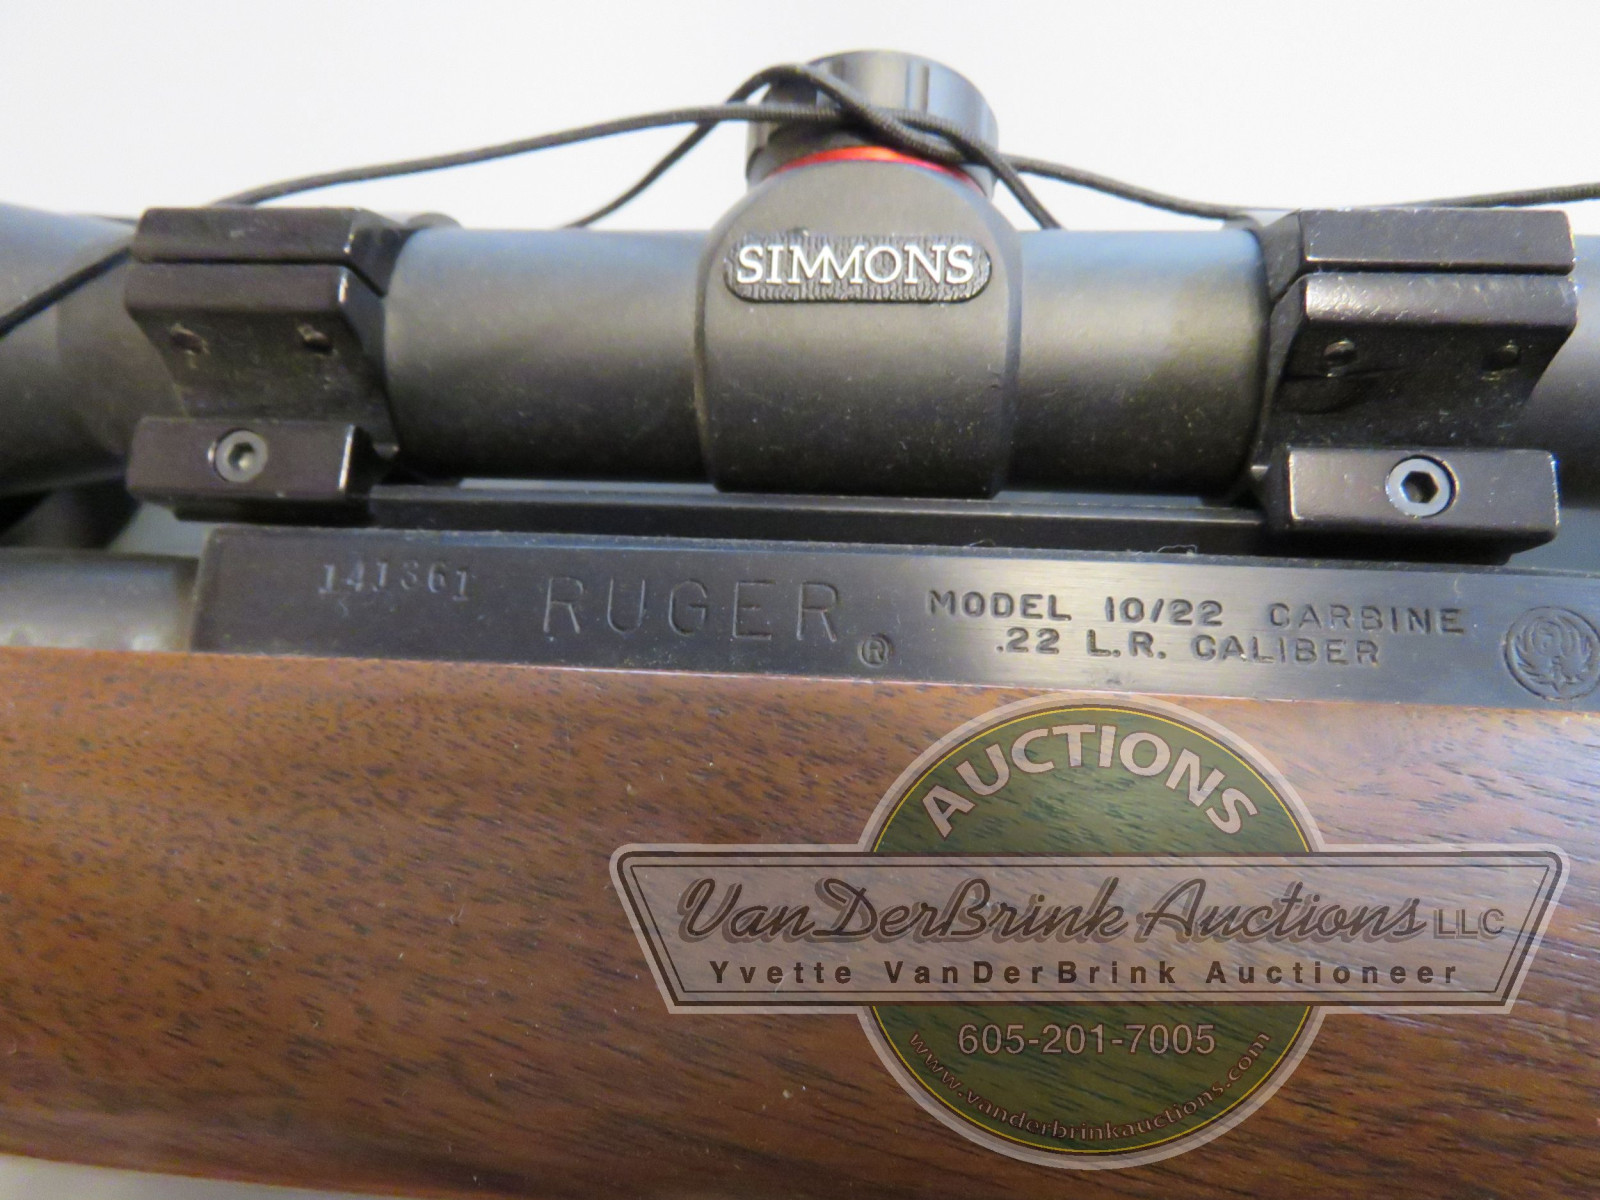 Ruger Model 10/22 .22LR Rifle with Simmons Scope 141361 - Image 3